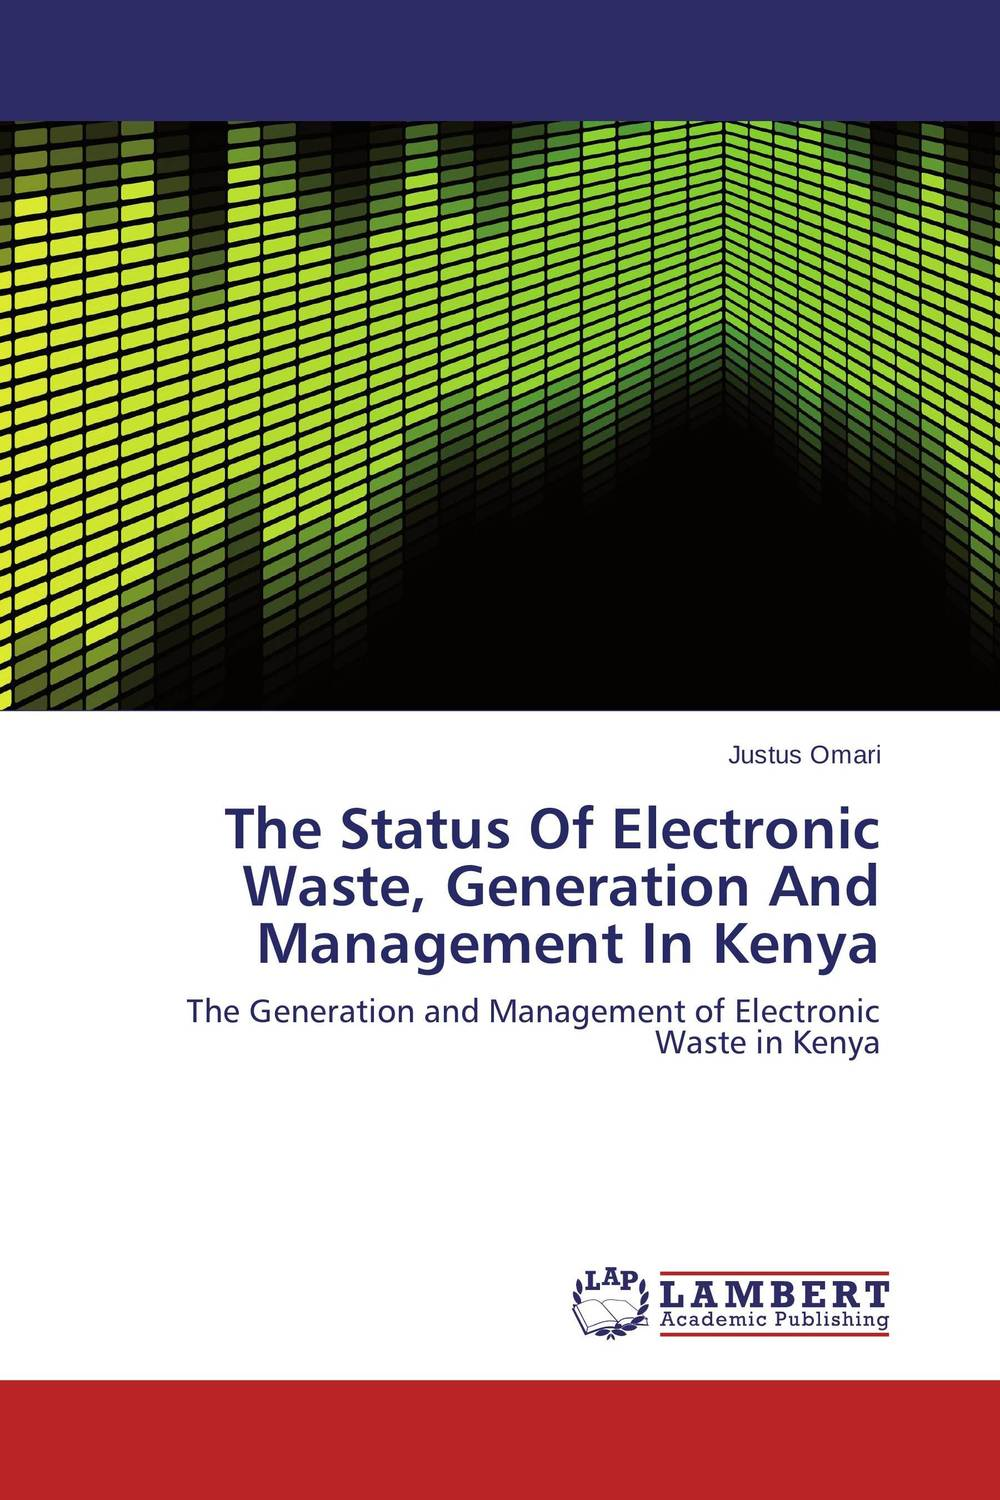 The Status Of Electronic Waste, Generation And Management In Kenya